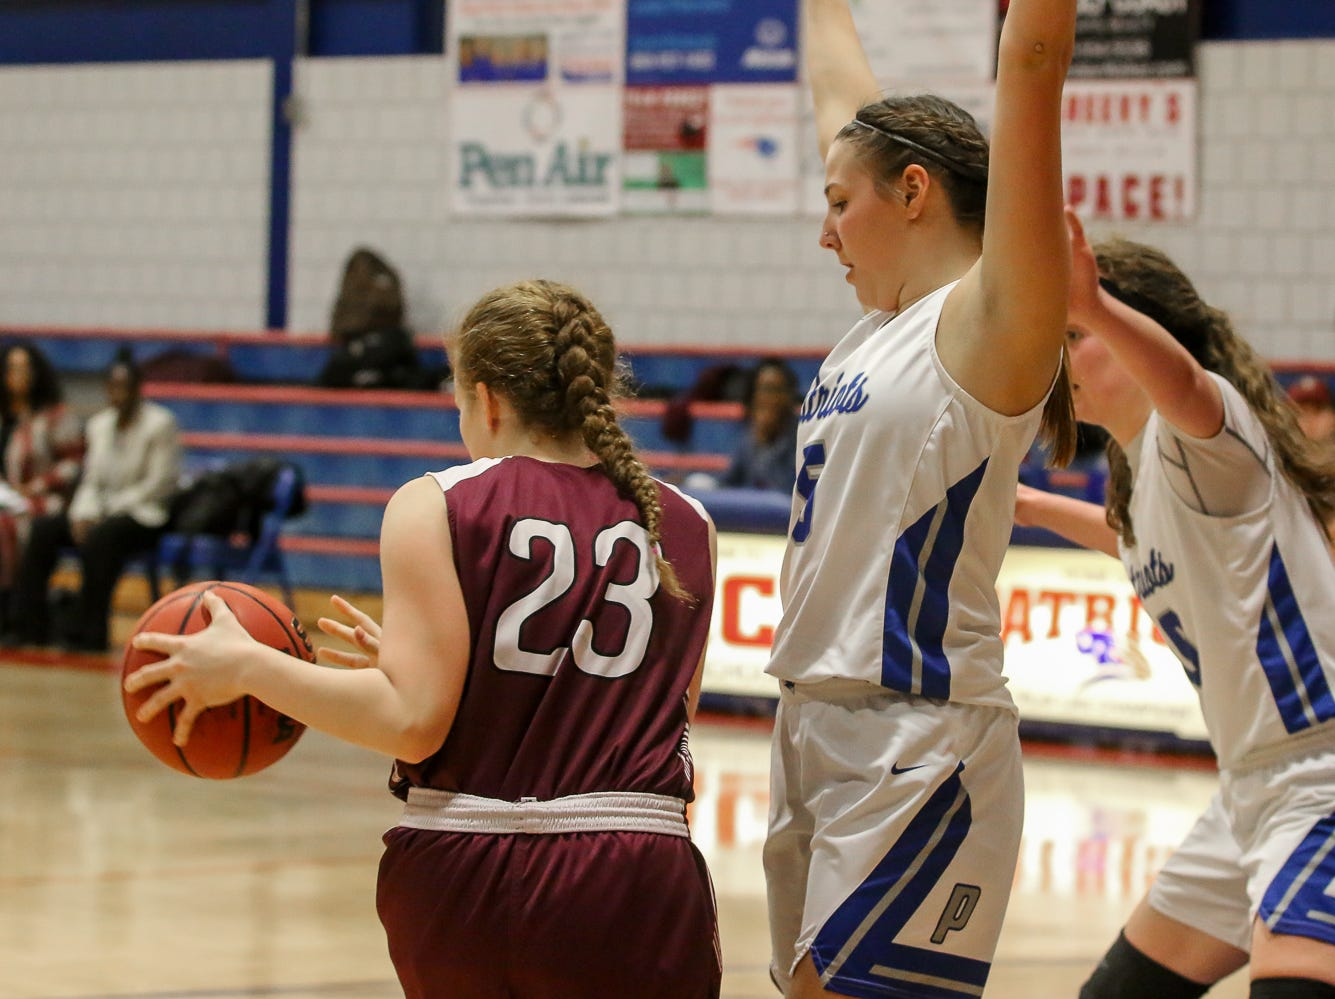 PHS' Sophia Litchfield (23) changes direction after being blocked by Pace's Violette Skipworth (5) at Pace High School on Friday, January 4, 2019.